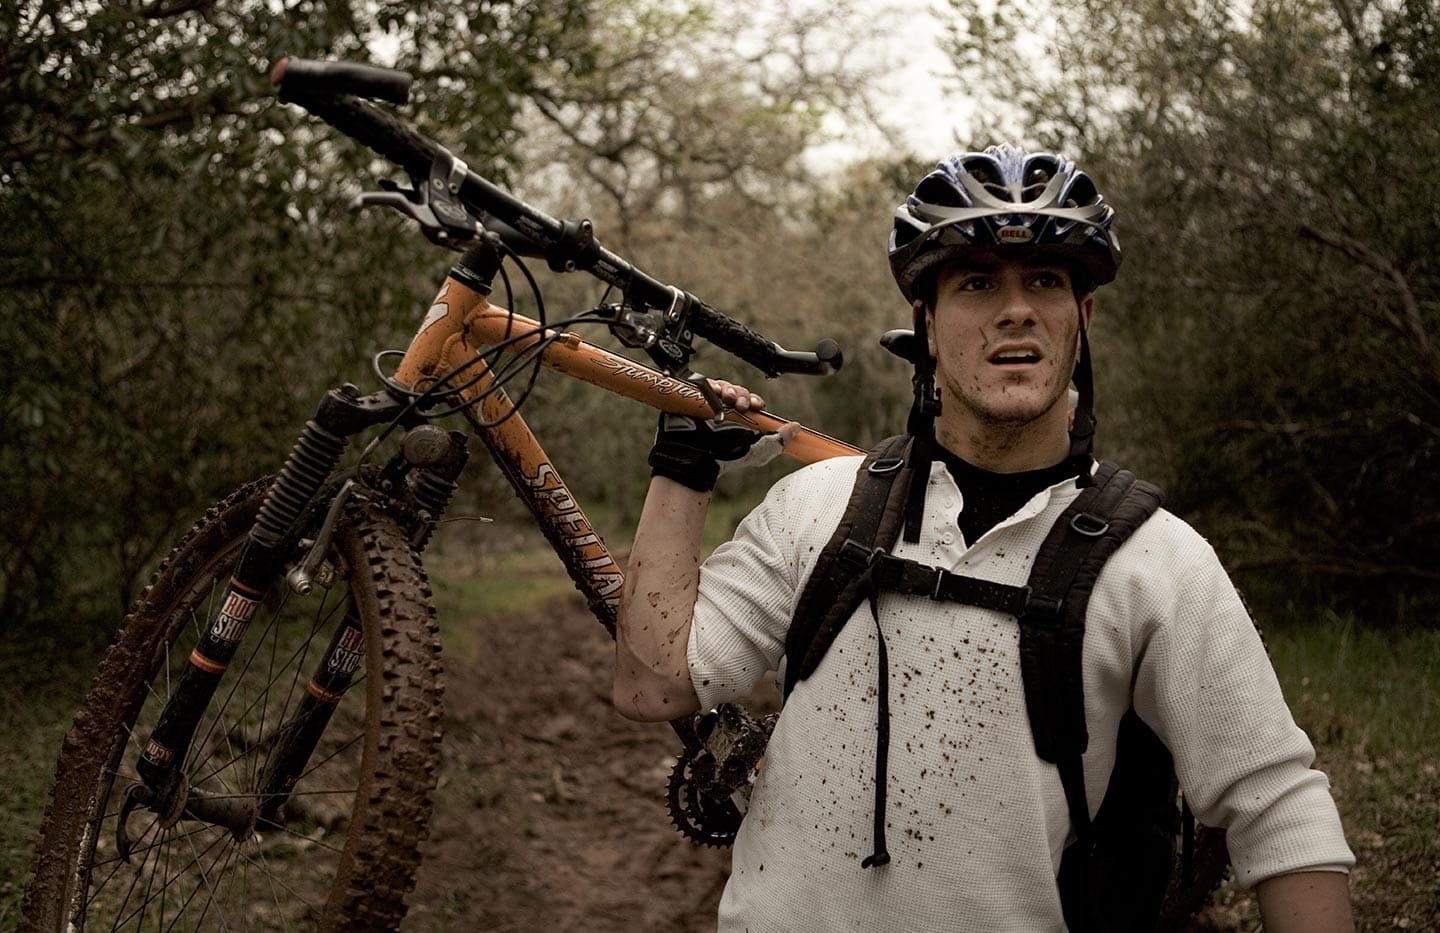 Image of Man in White Shirt with Biking Apparel Lifting Bike Behind Him Against Background of Forest